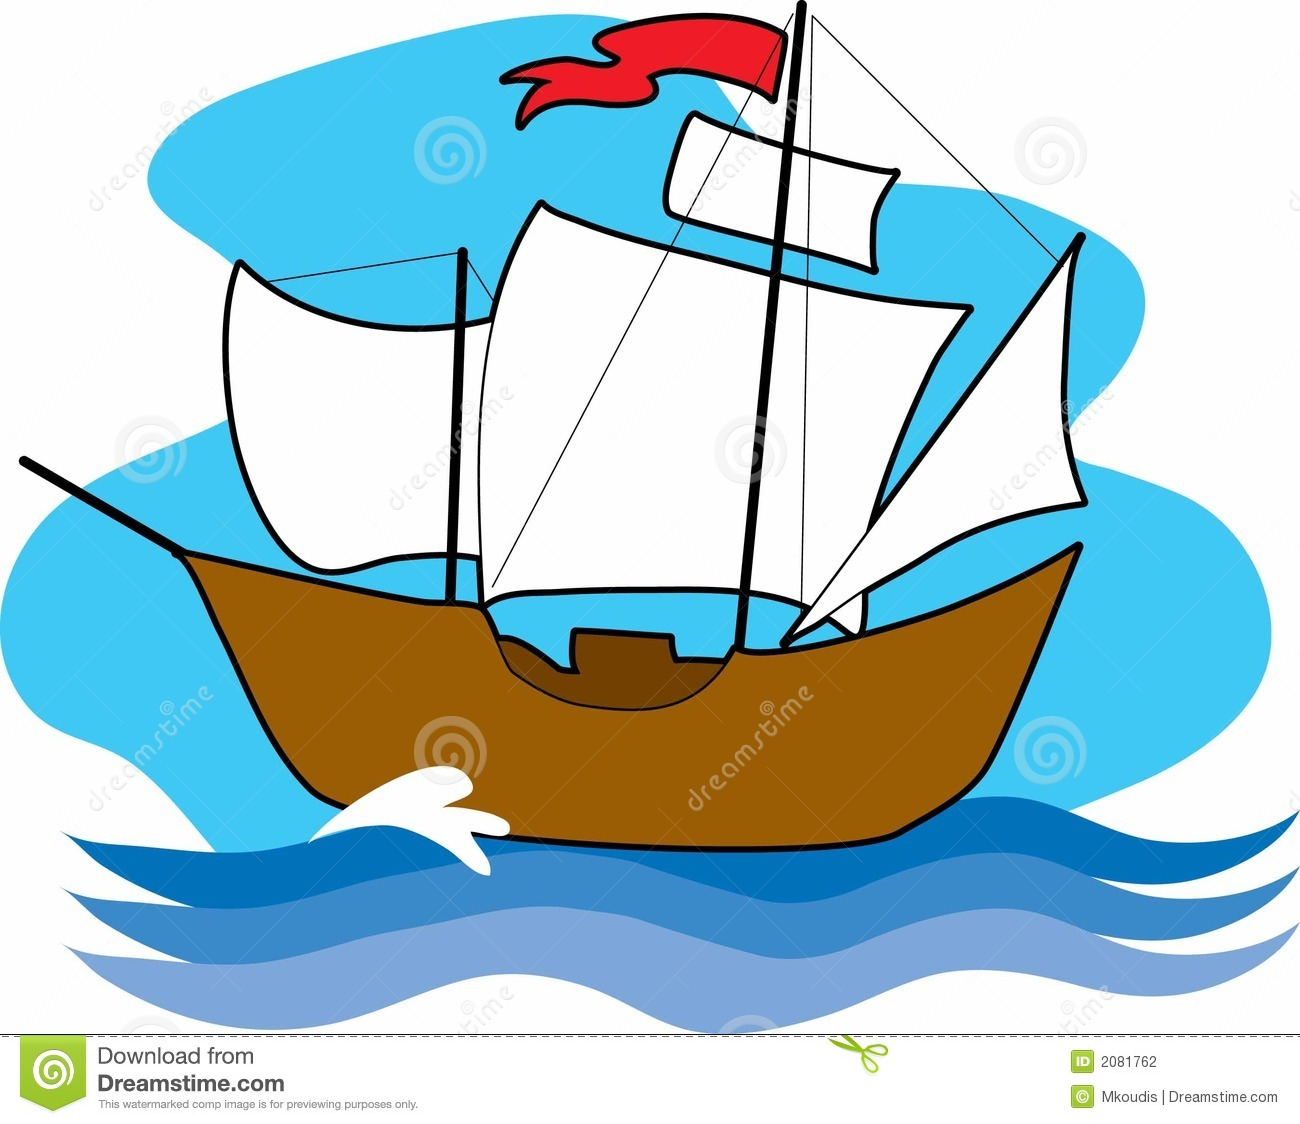 Sailing boat free download. Boats clipart old fashioned